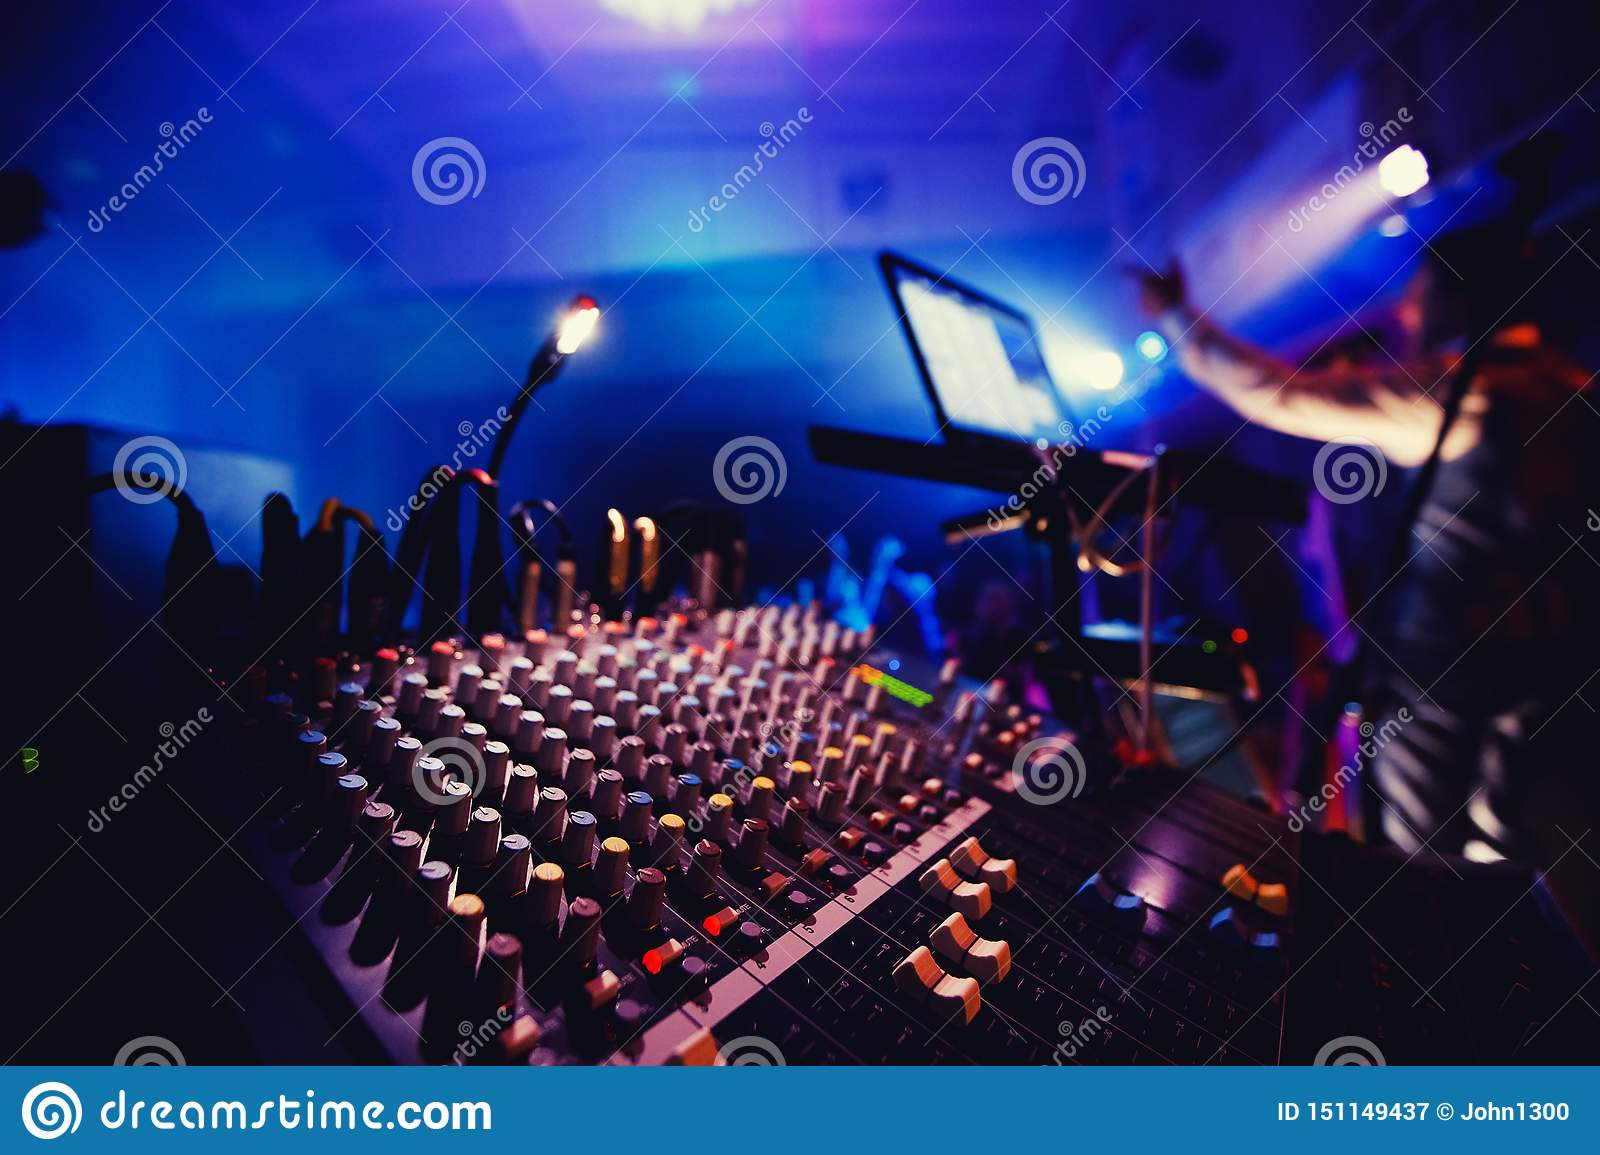 Sound equipment in nightclub party. DJ console, people dancing in background, around bright lights